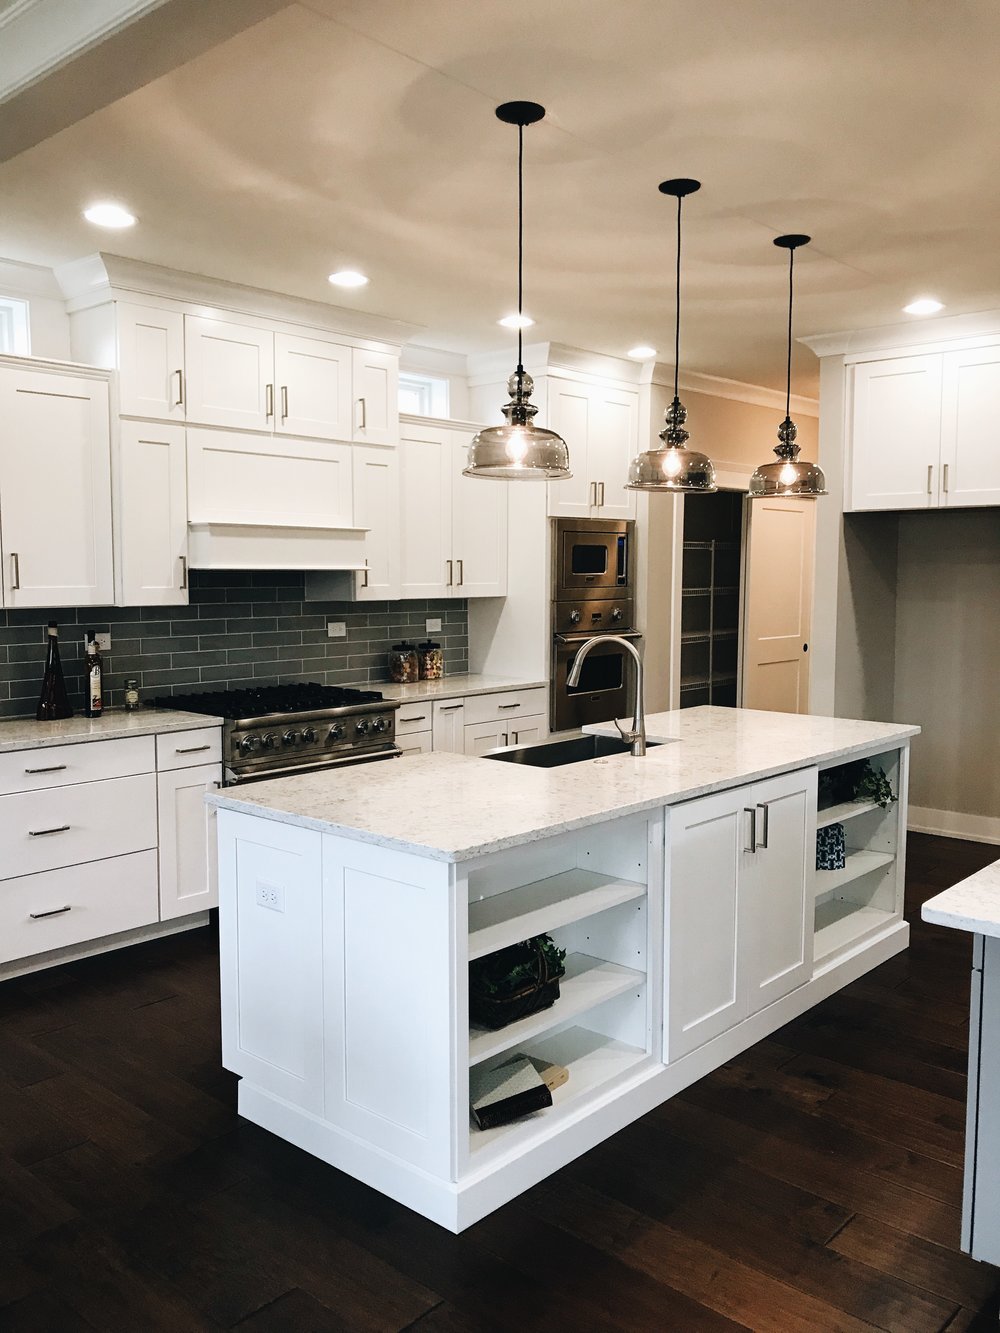 Kitchen Island Design. New Kitchen Design. Lighting for kitchen.